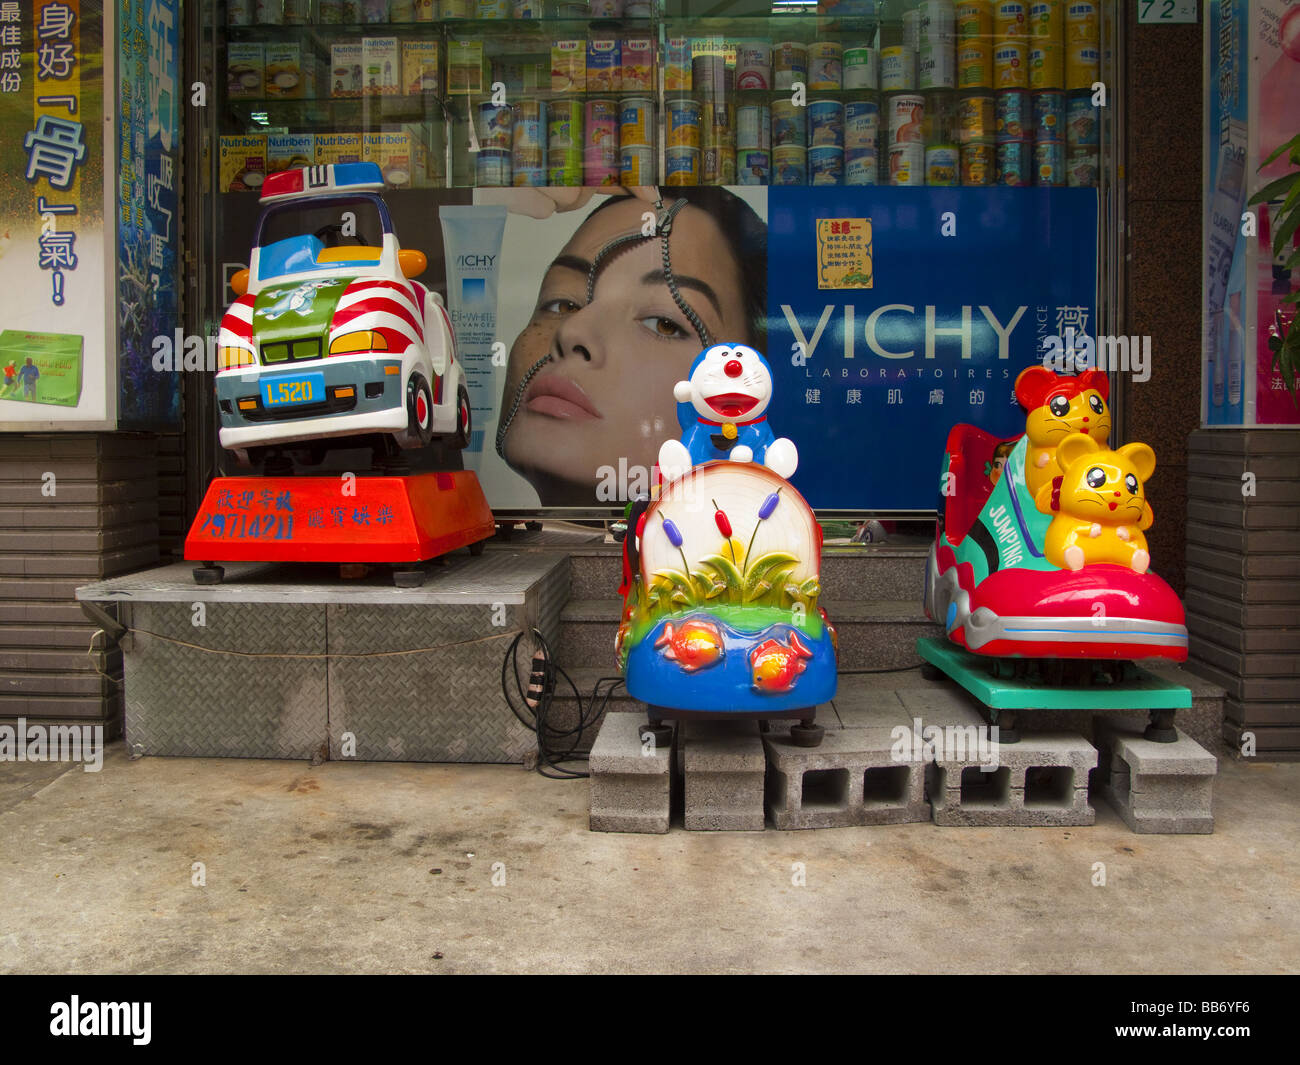 Childrens rides outside a chemist Taipei, Taiwan - Stock Image